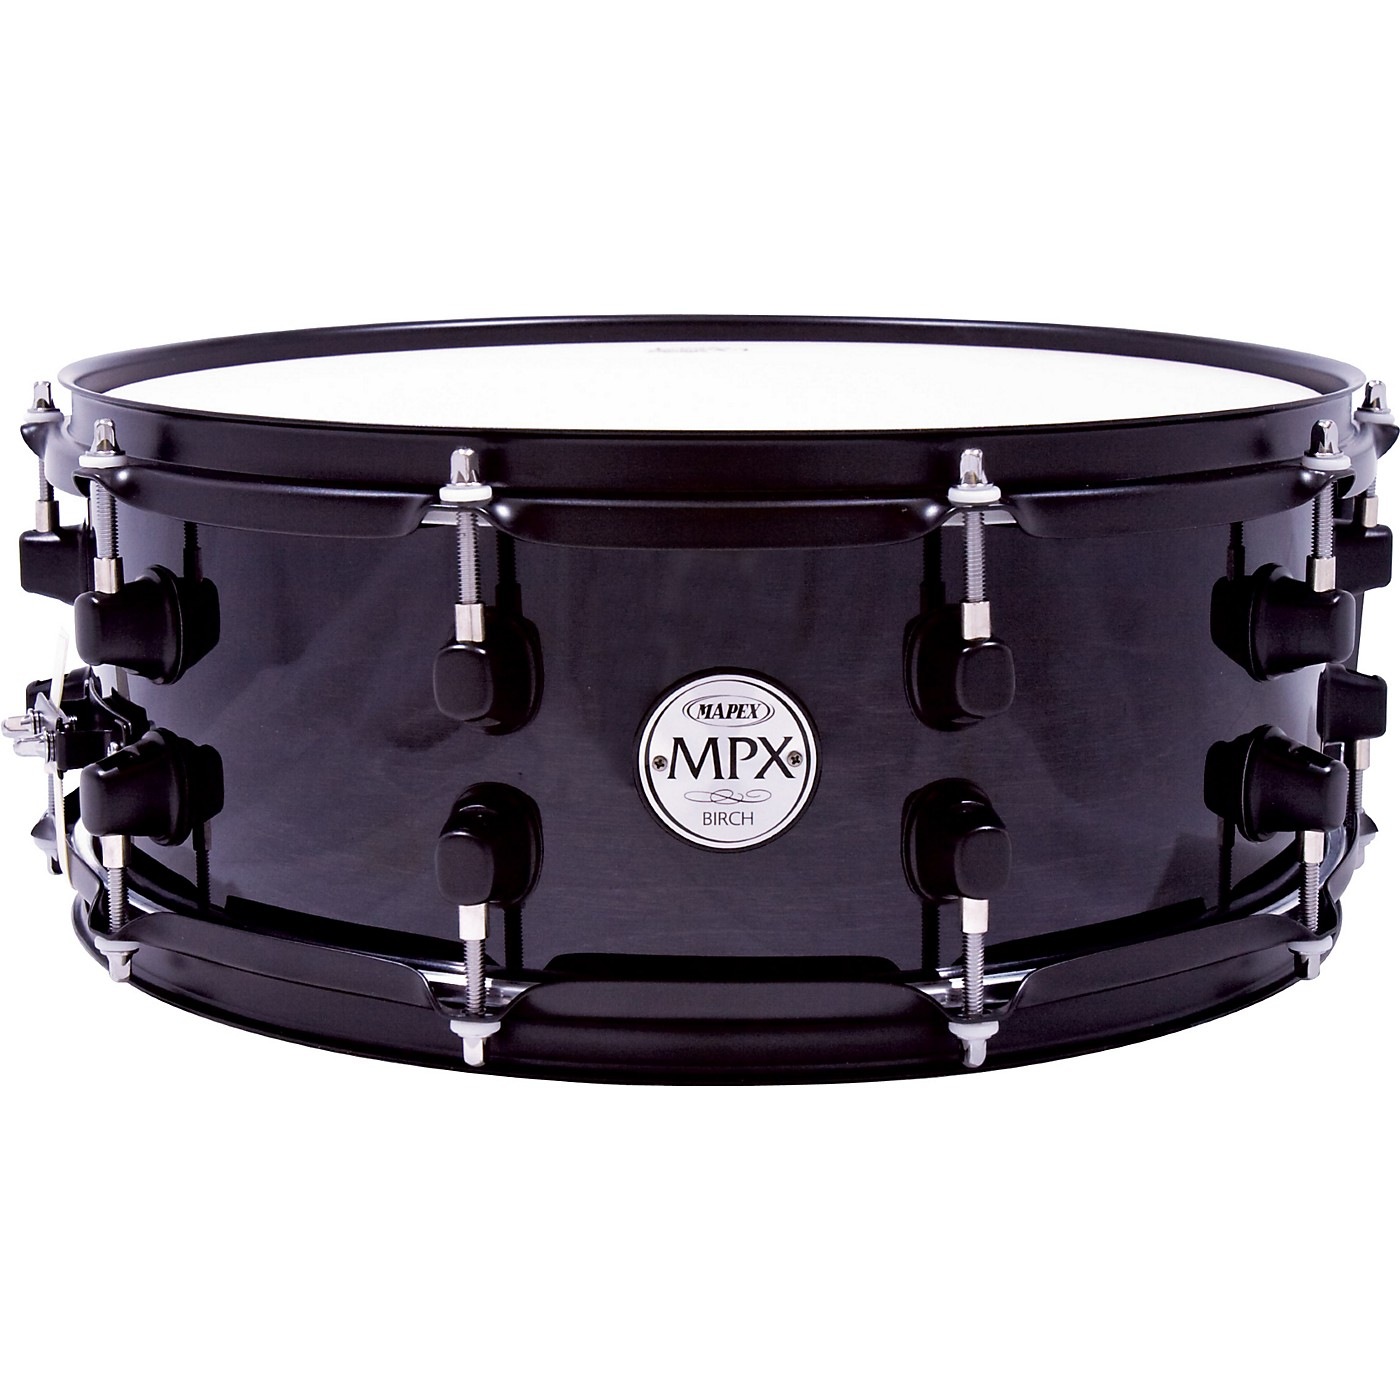 Mapex MPX Birch Snare Drum thumbnail